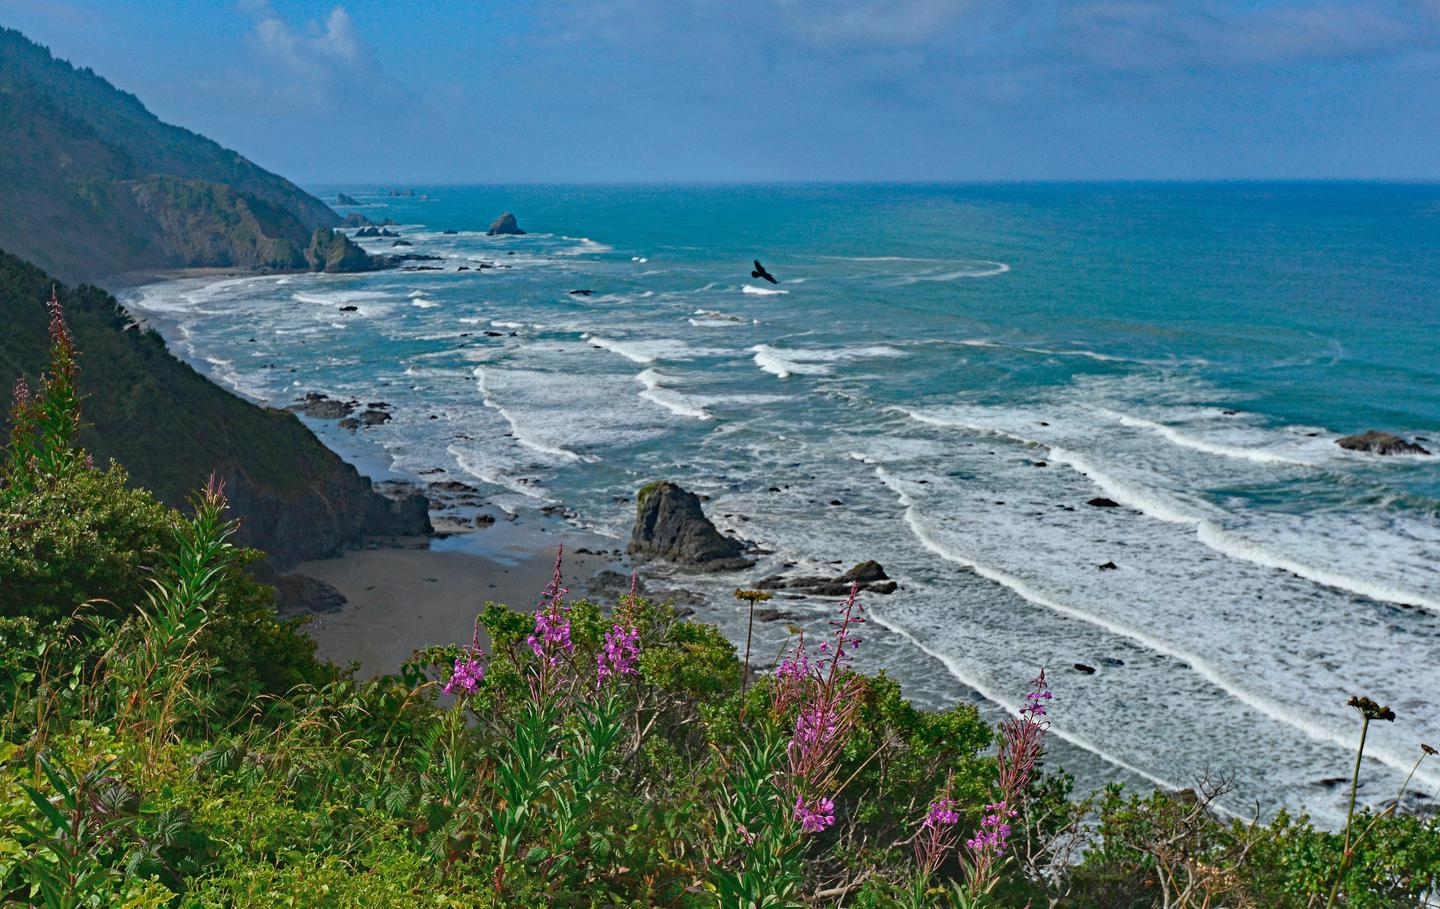 Enderts BeachThe park protects forty miles of rugged coastline and marine protected areas..